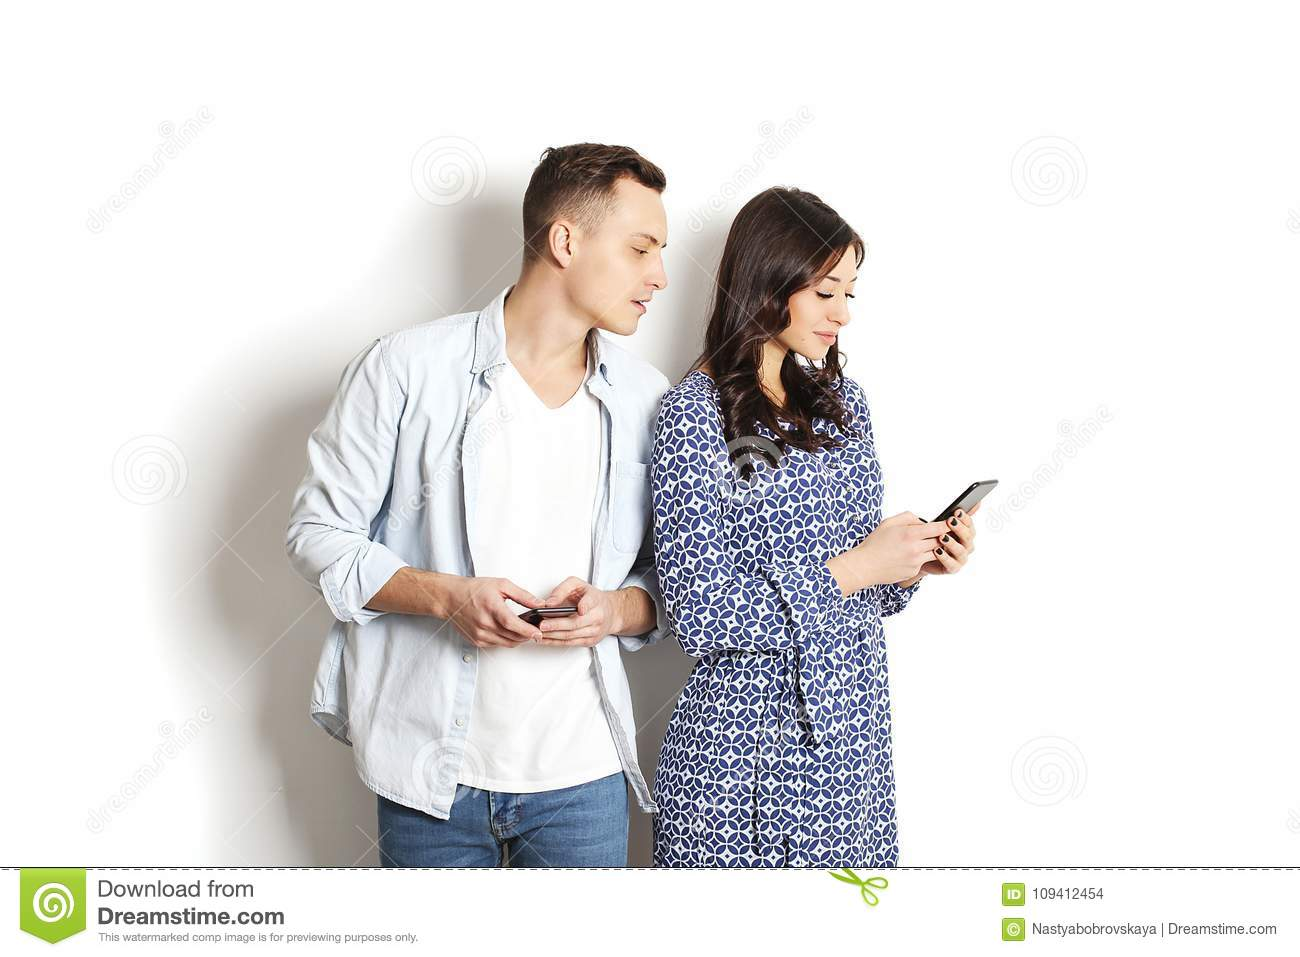 Jealous husband spying his wife mobile phone while she is reading a message. Technology & relationship concept. Modern romance tro